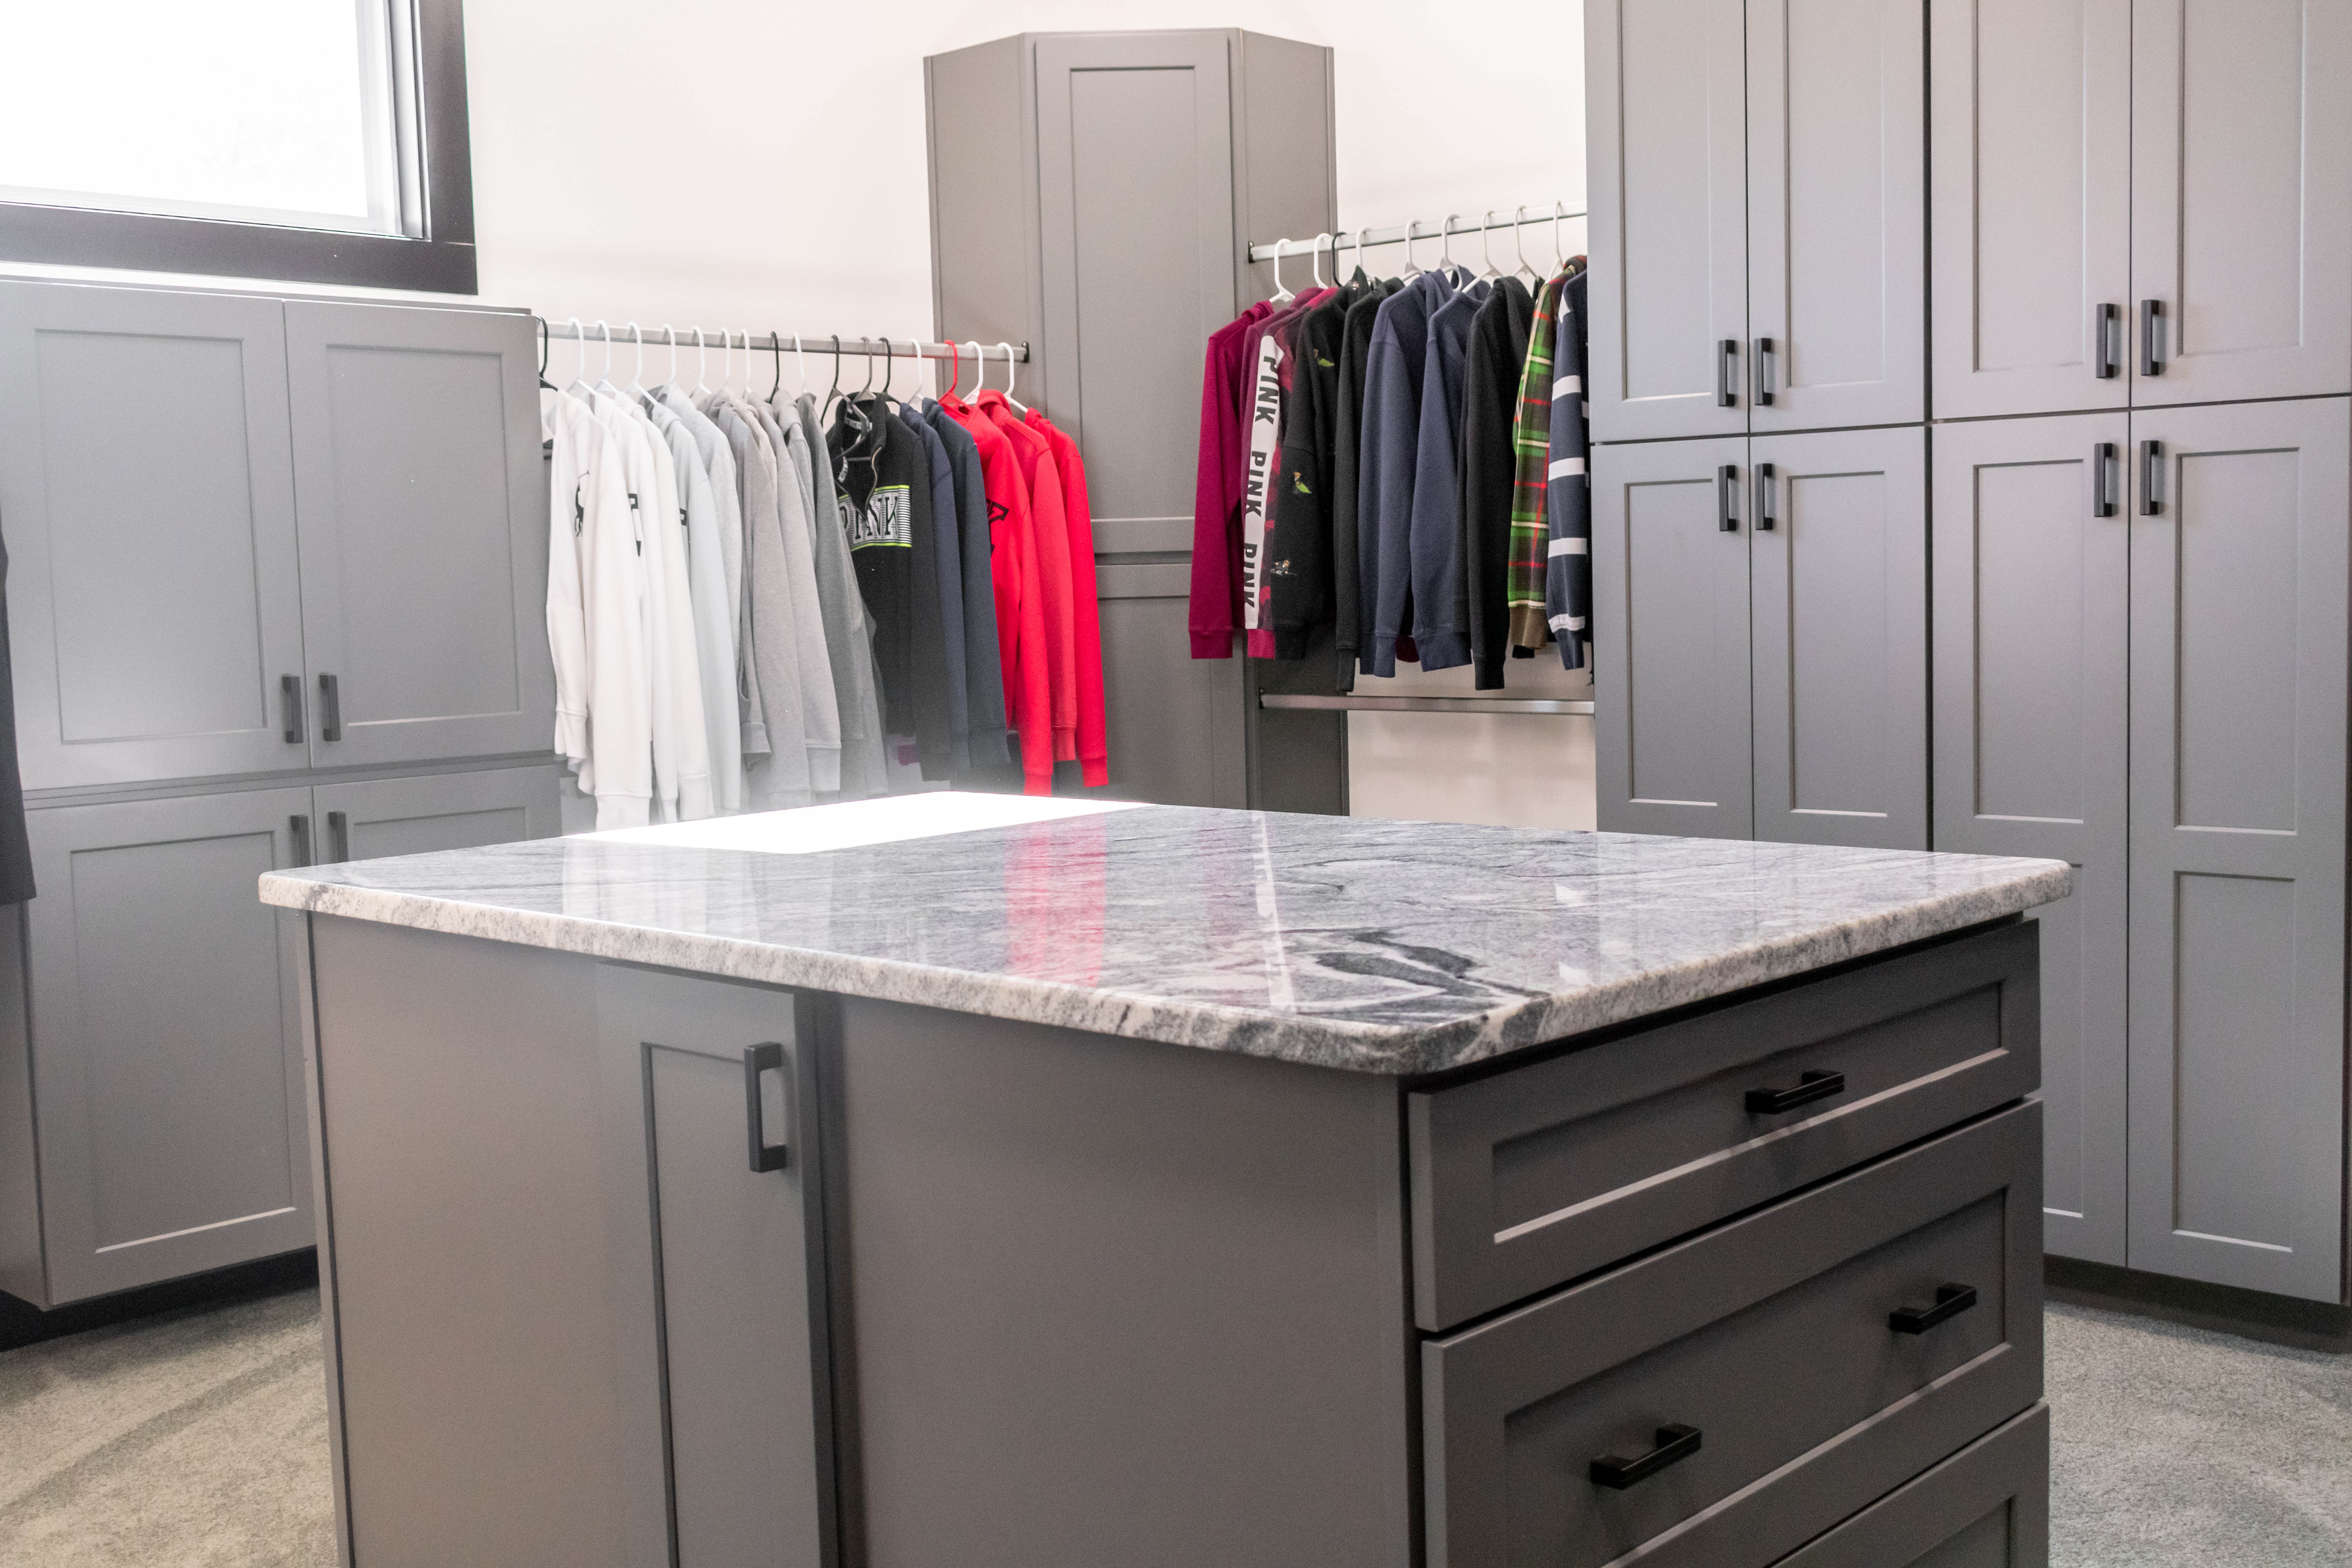 We topped this closet storage island with Viscon White Granite.